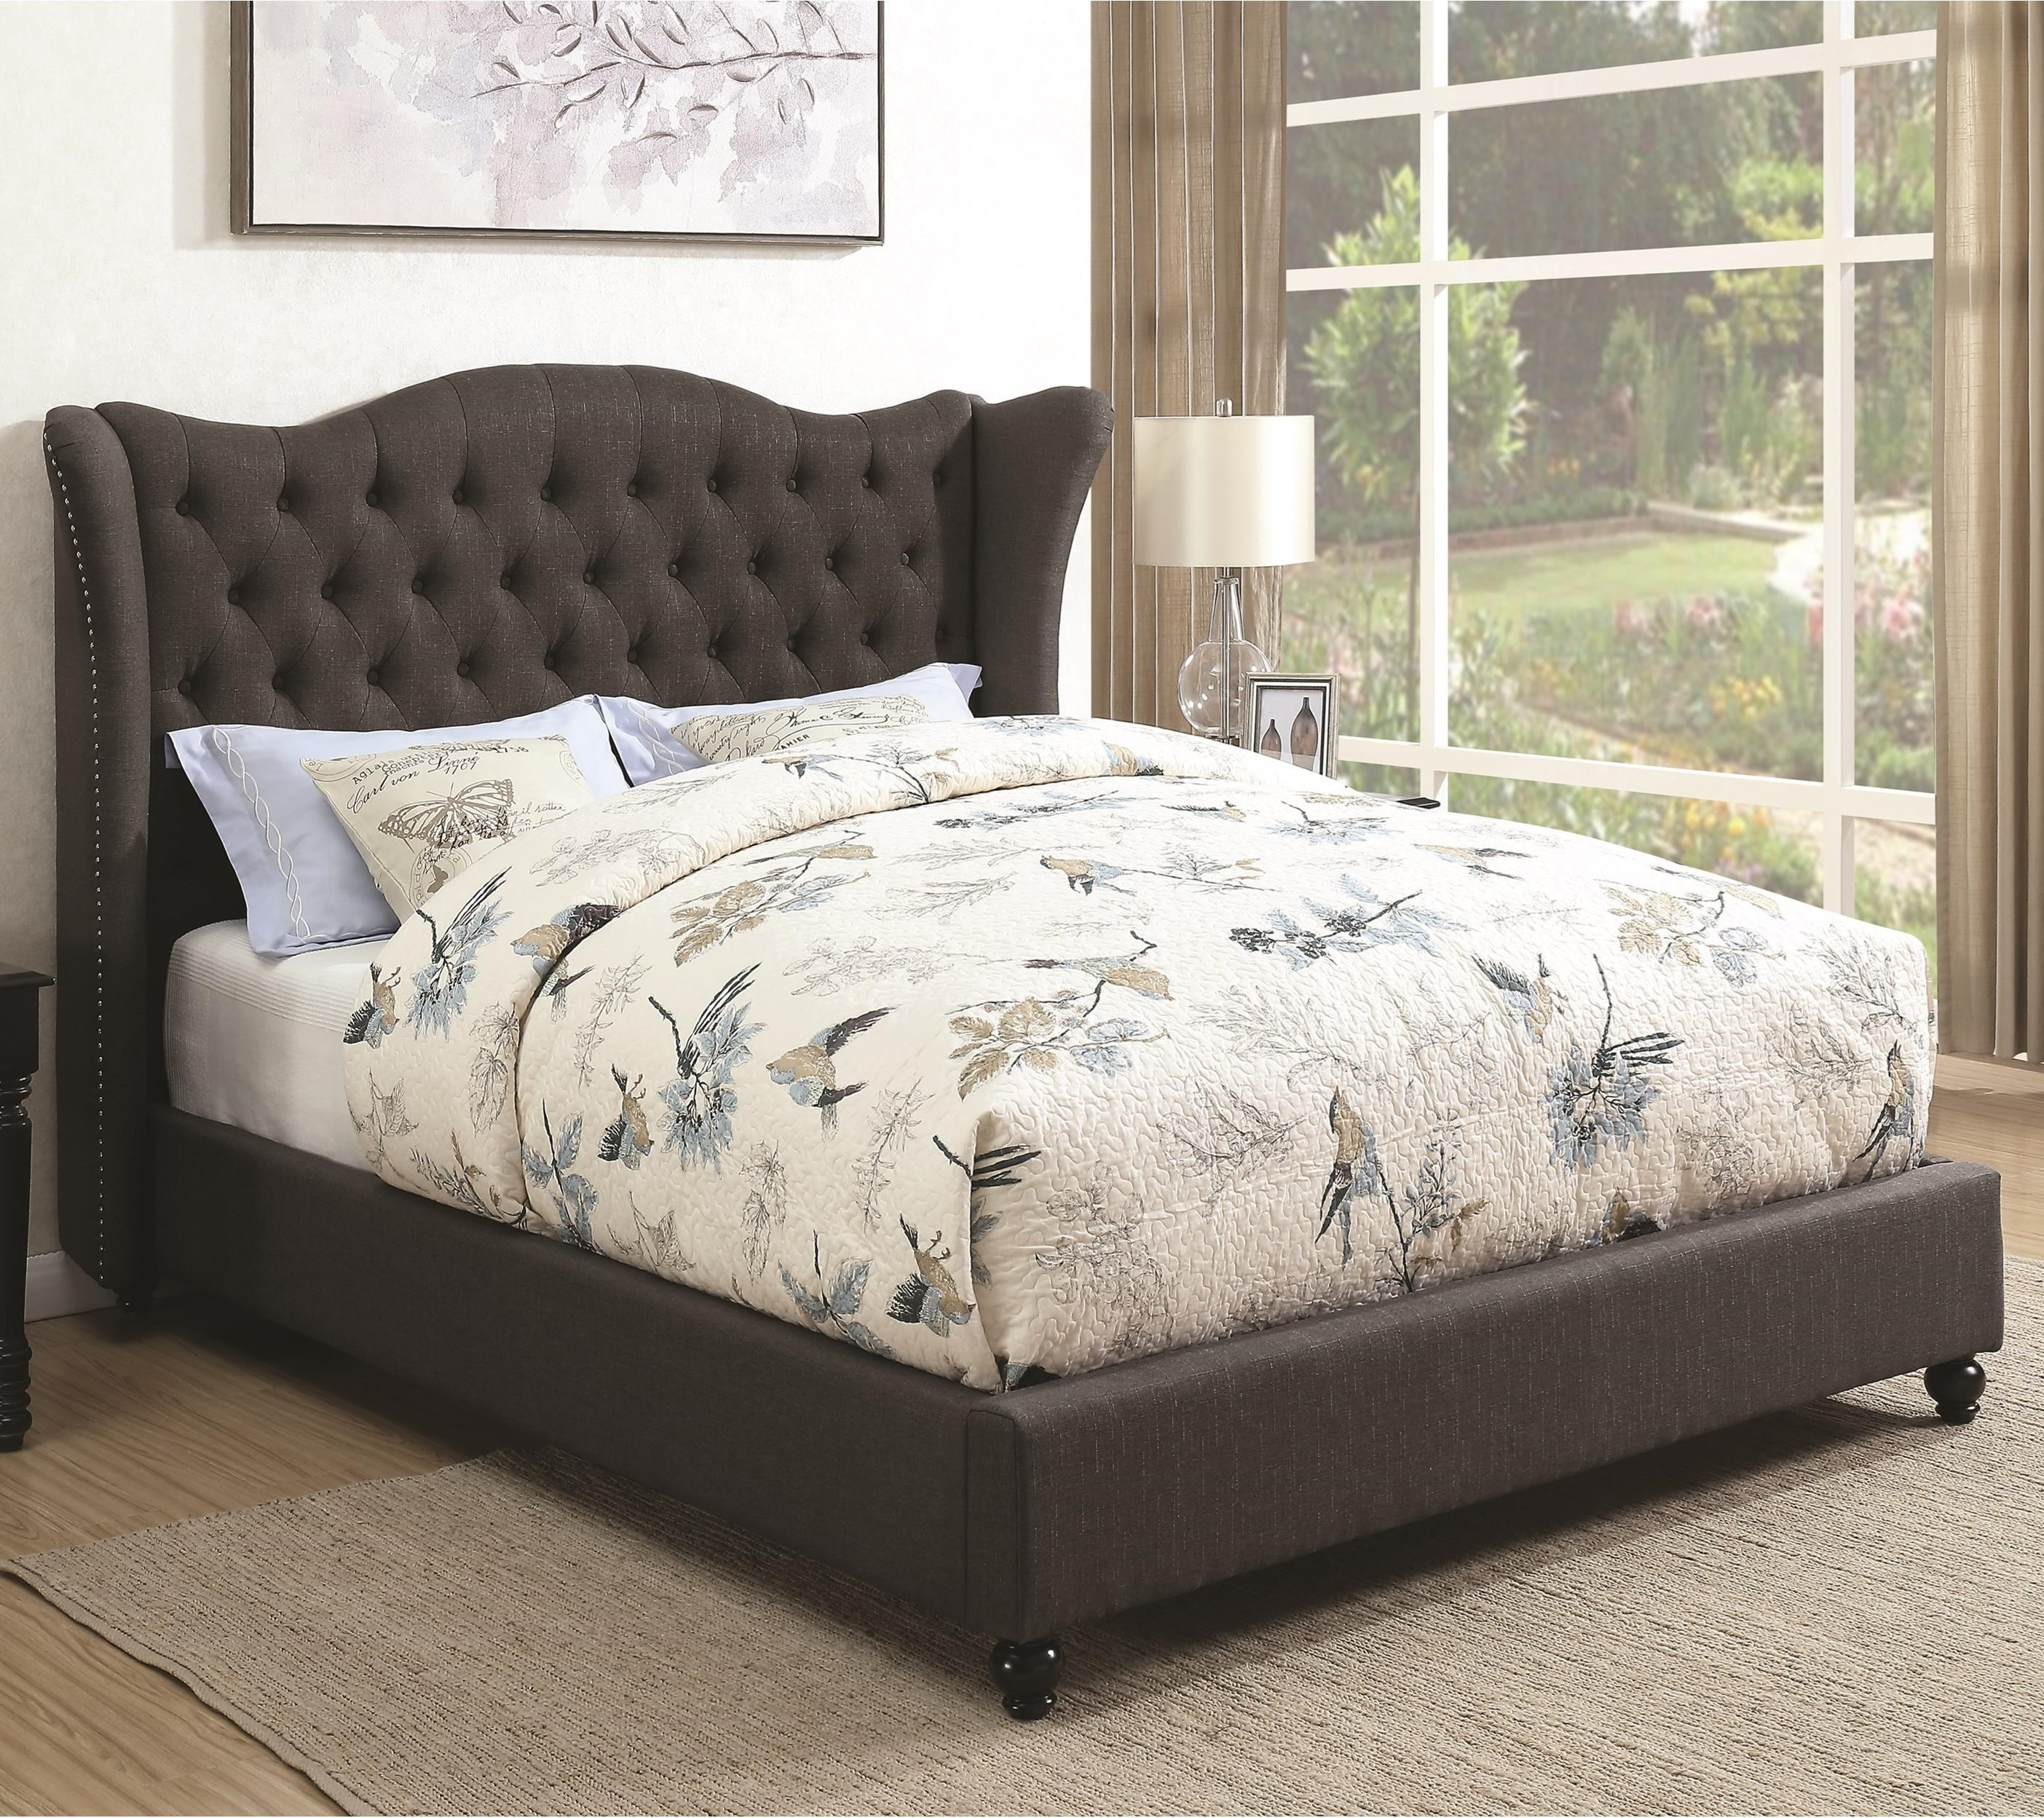 Coaster Newburgh Twin Upholstered Bed - Item Number: 300740T